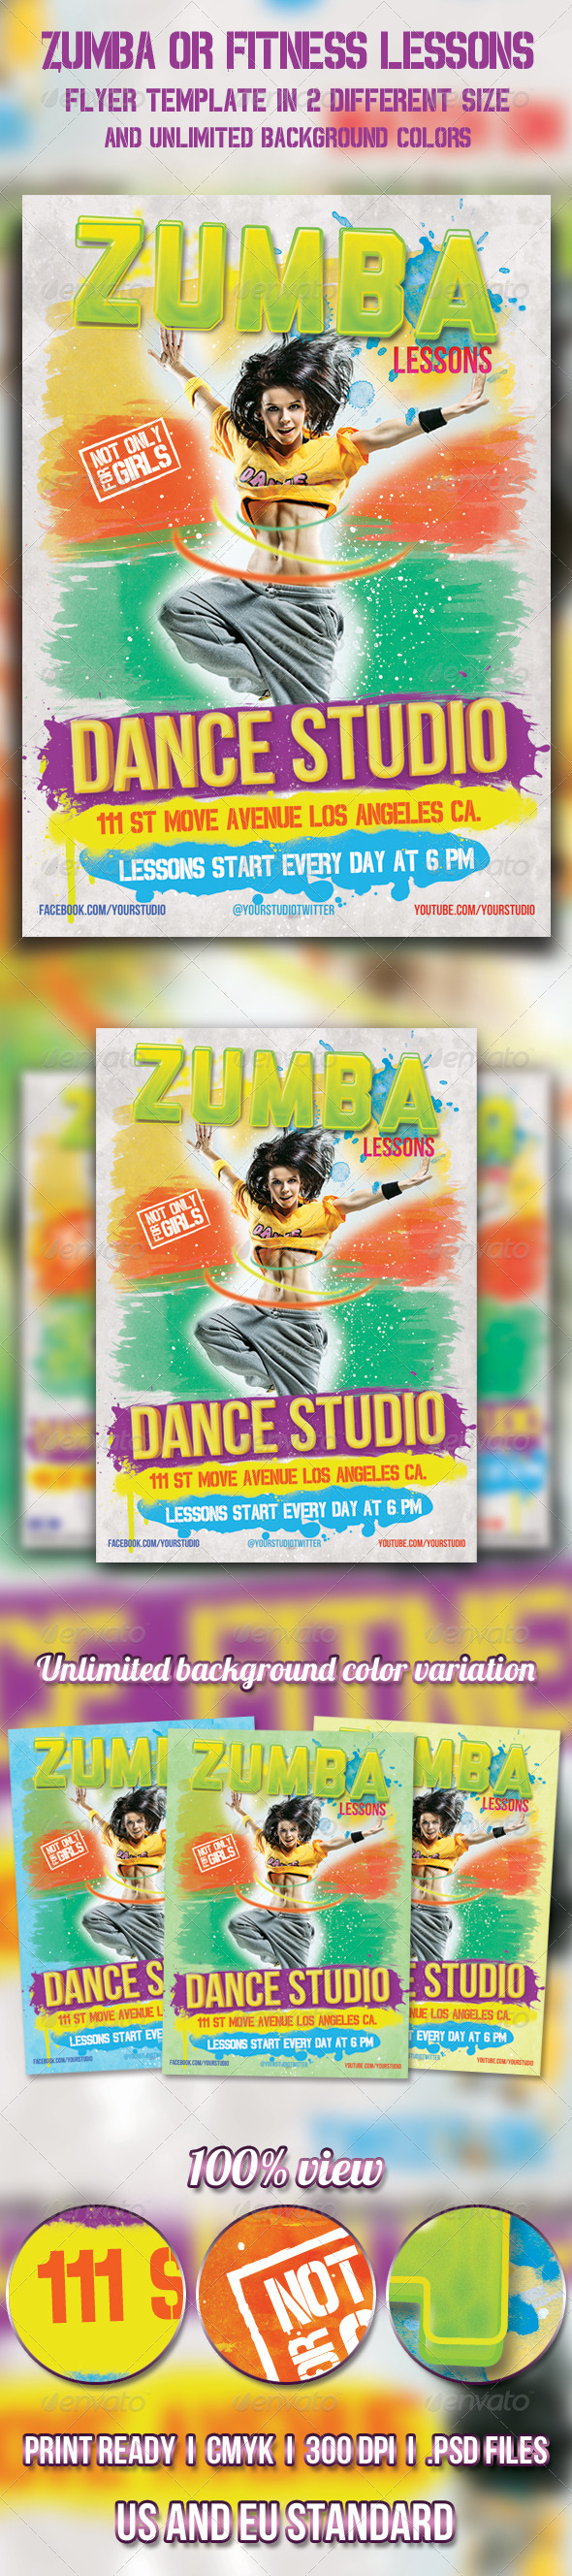 GraphicRiver Zumba or Fitness lessons flyer 4496266